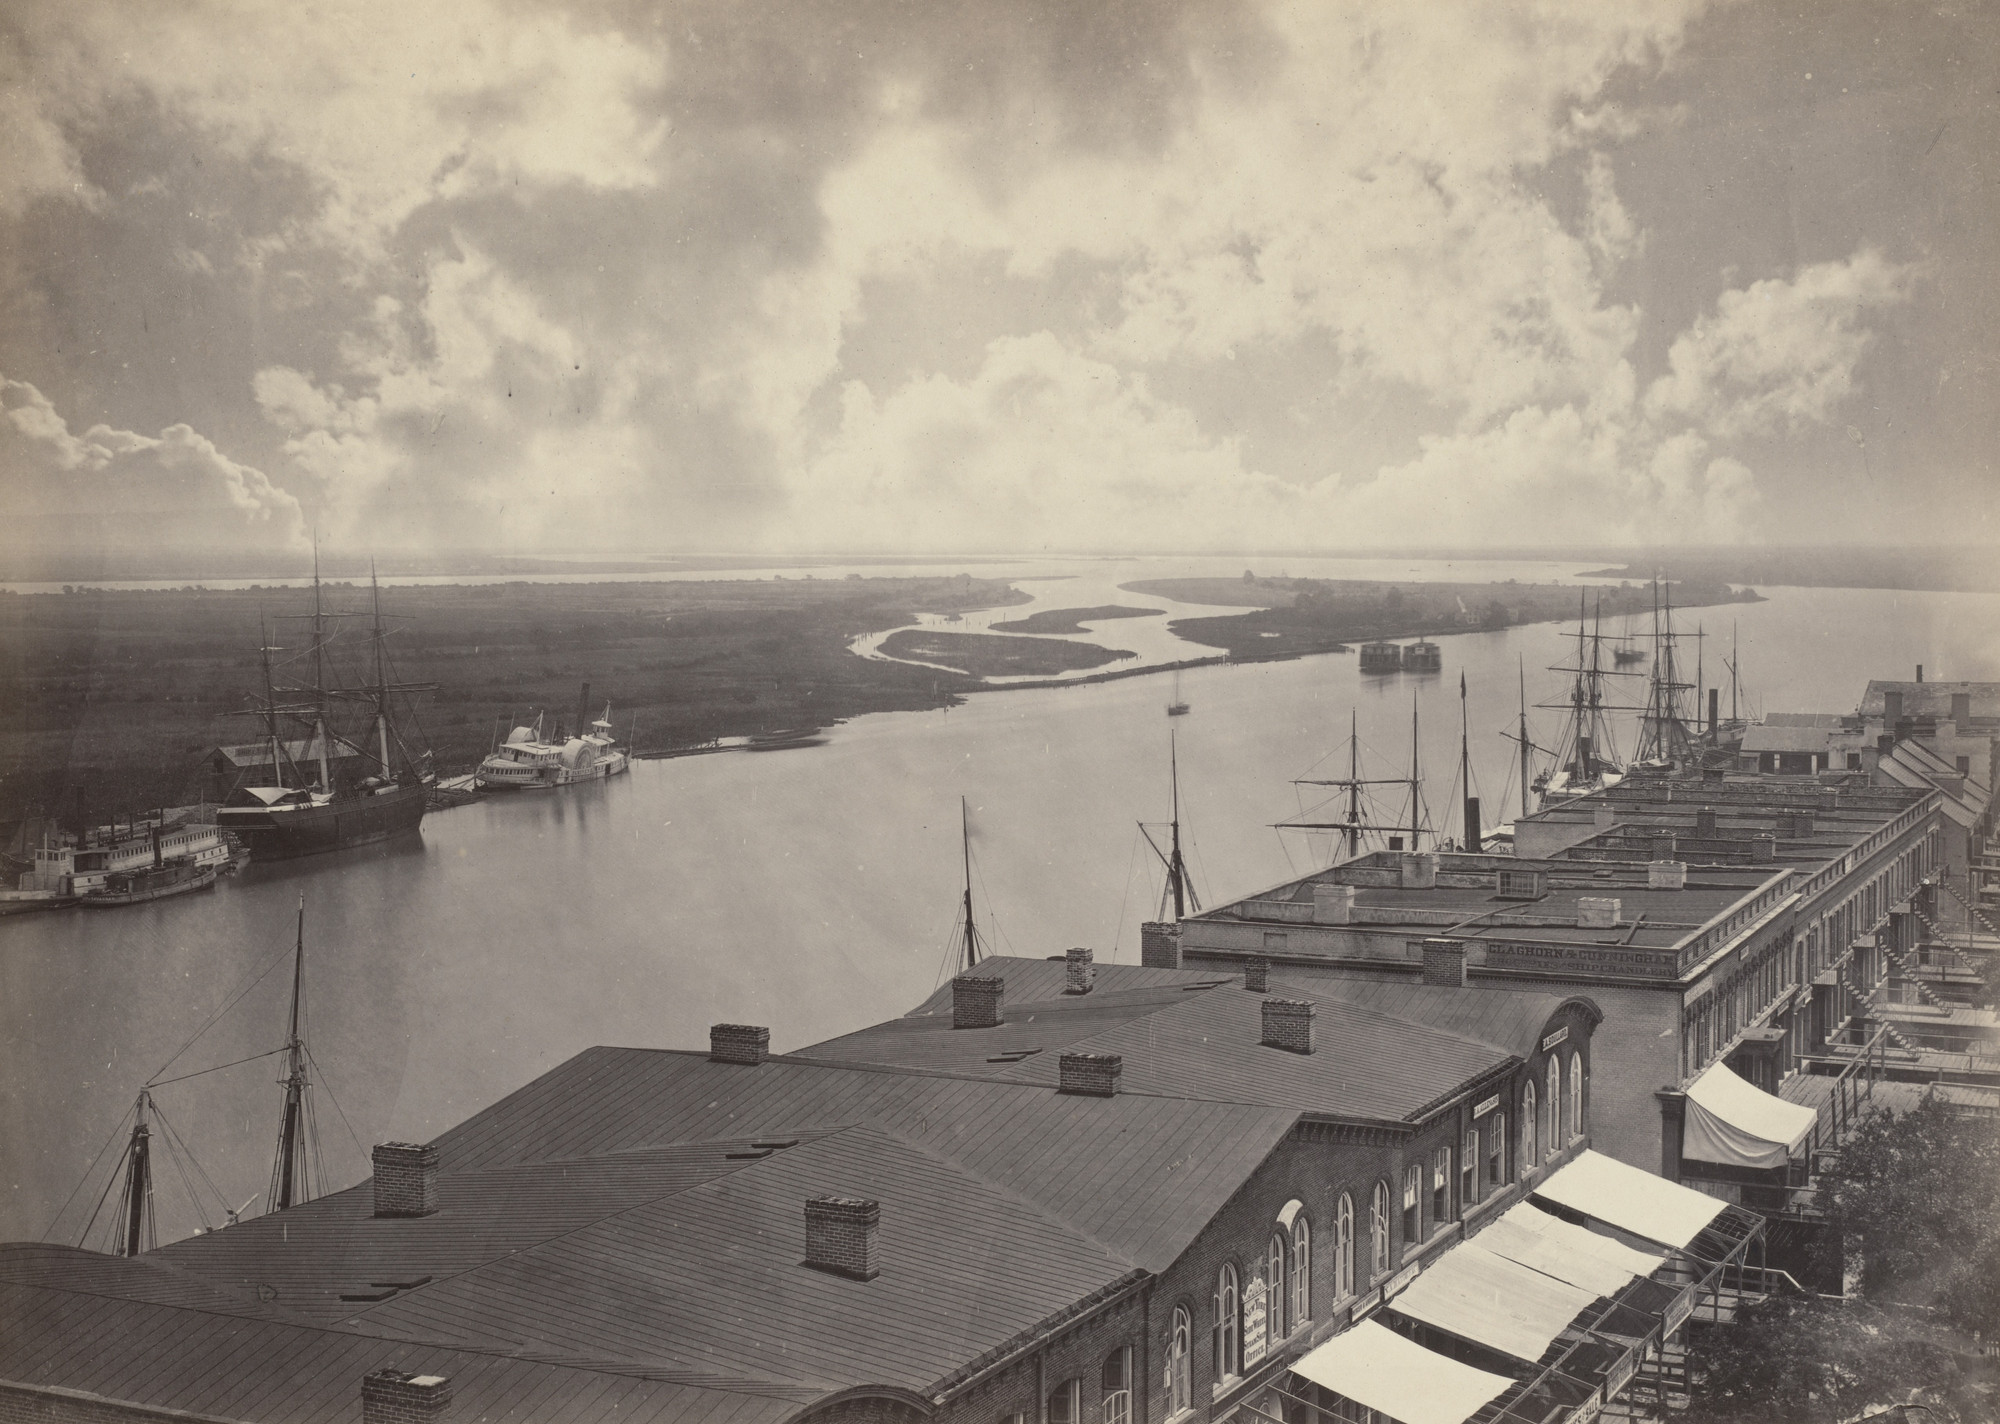 George Barnard. Savannah, Looking down the River from the album Photographic Views of Sherman's Campaign. 1864-65